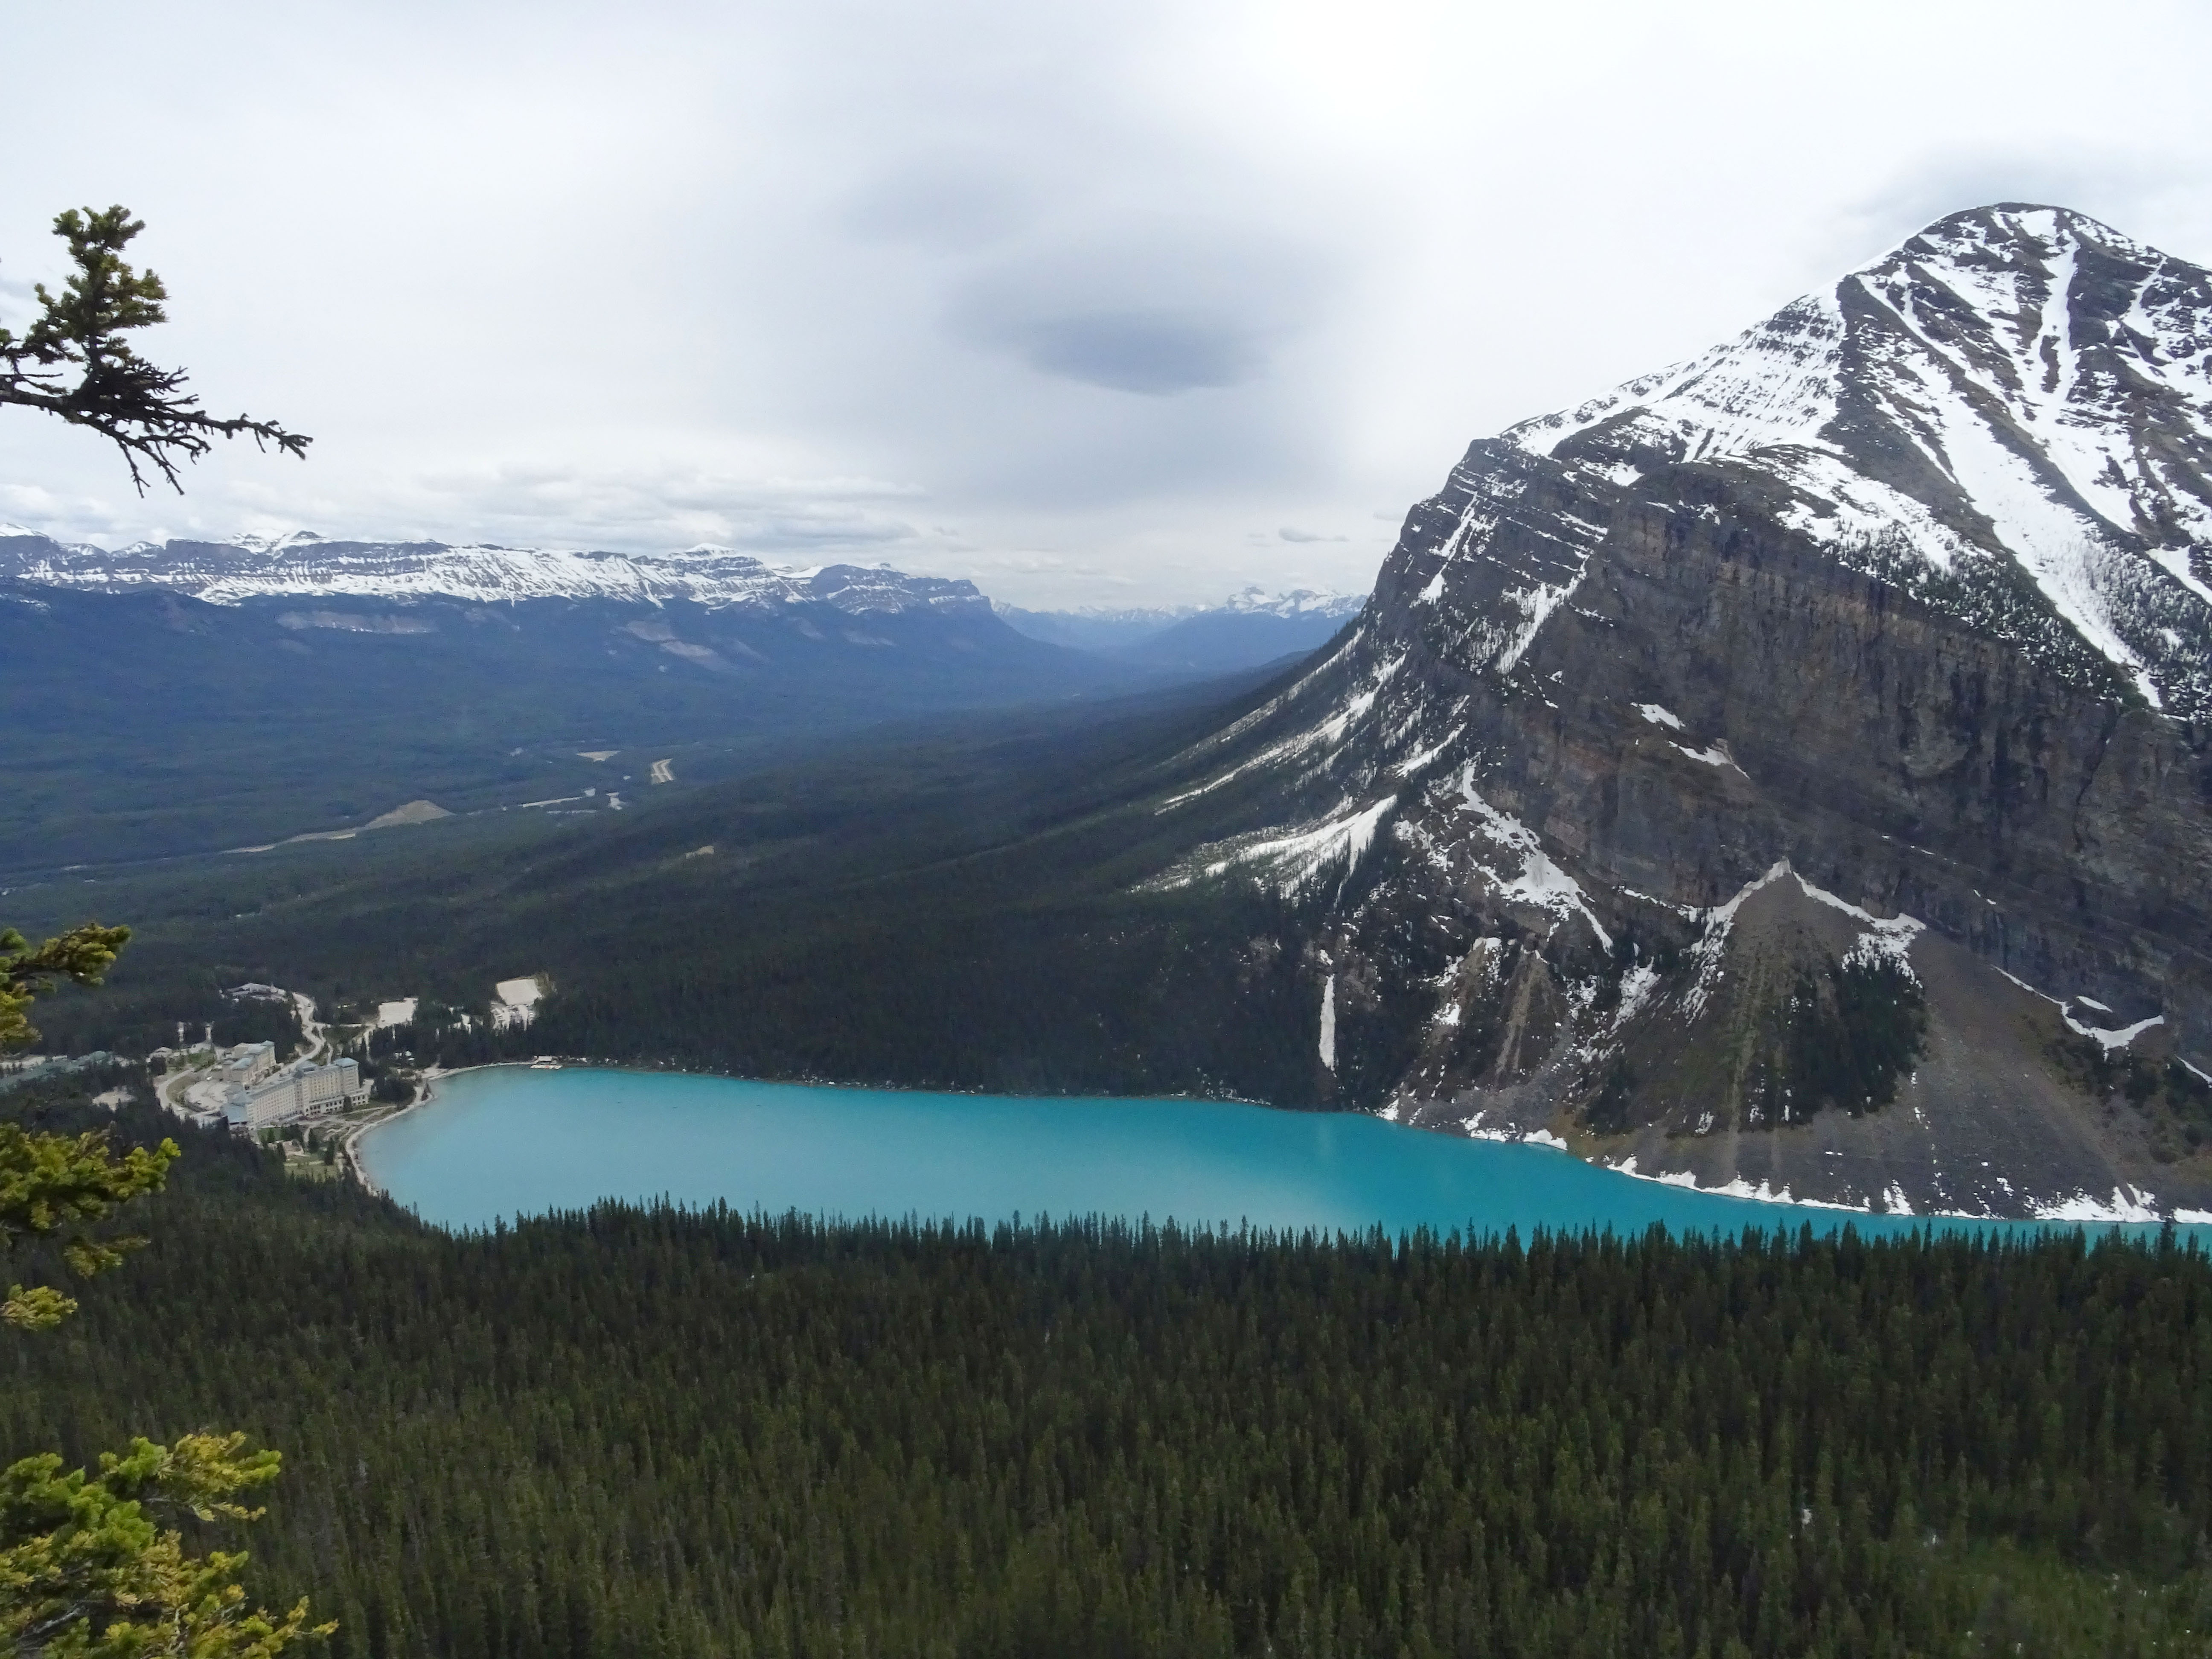 Randonnée Little Beehive via le Lac Louise, Parc national de Banff, Alberta, Canada